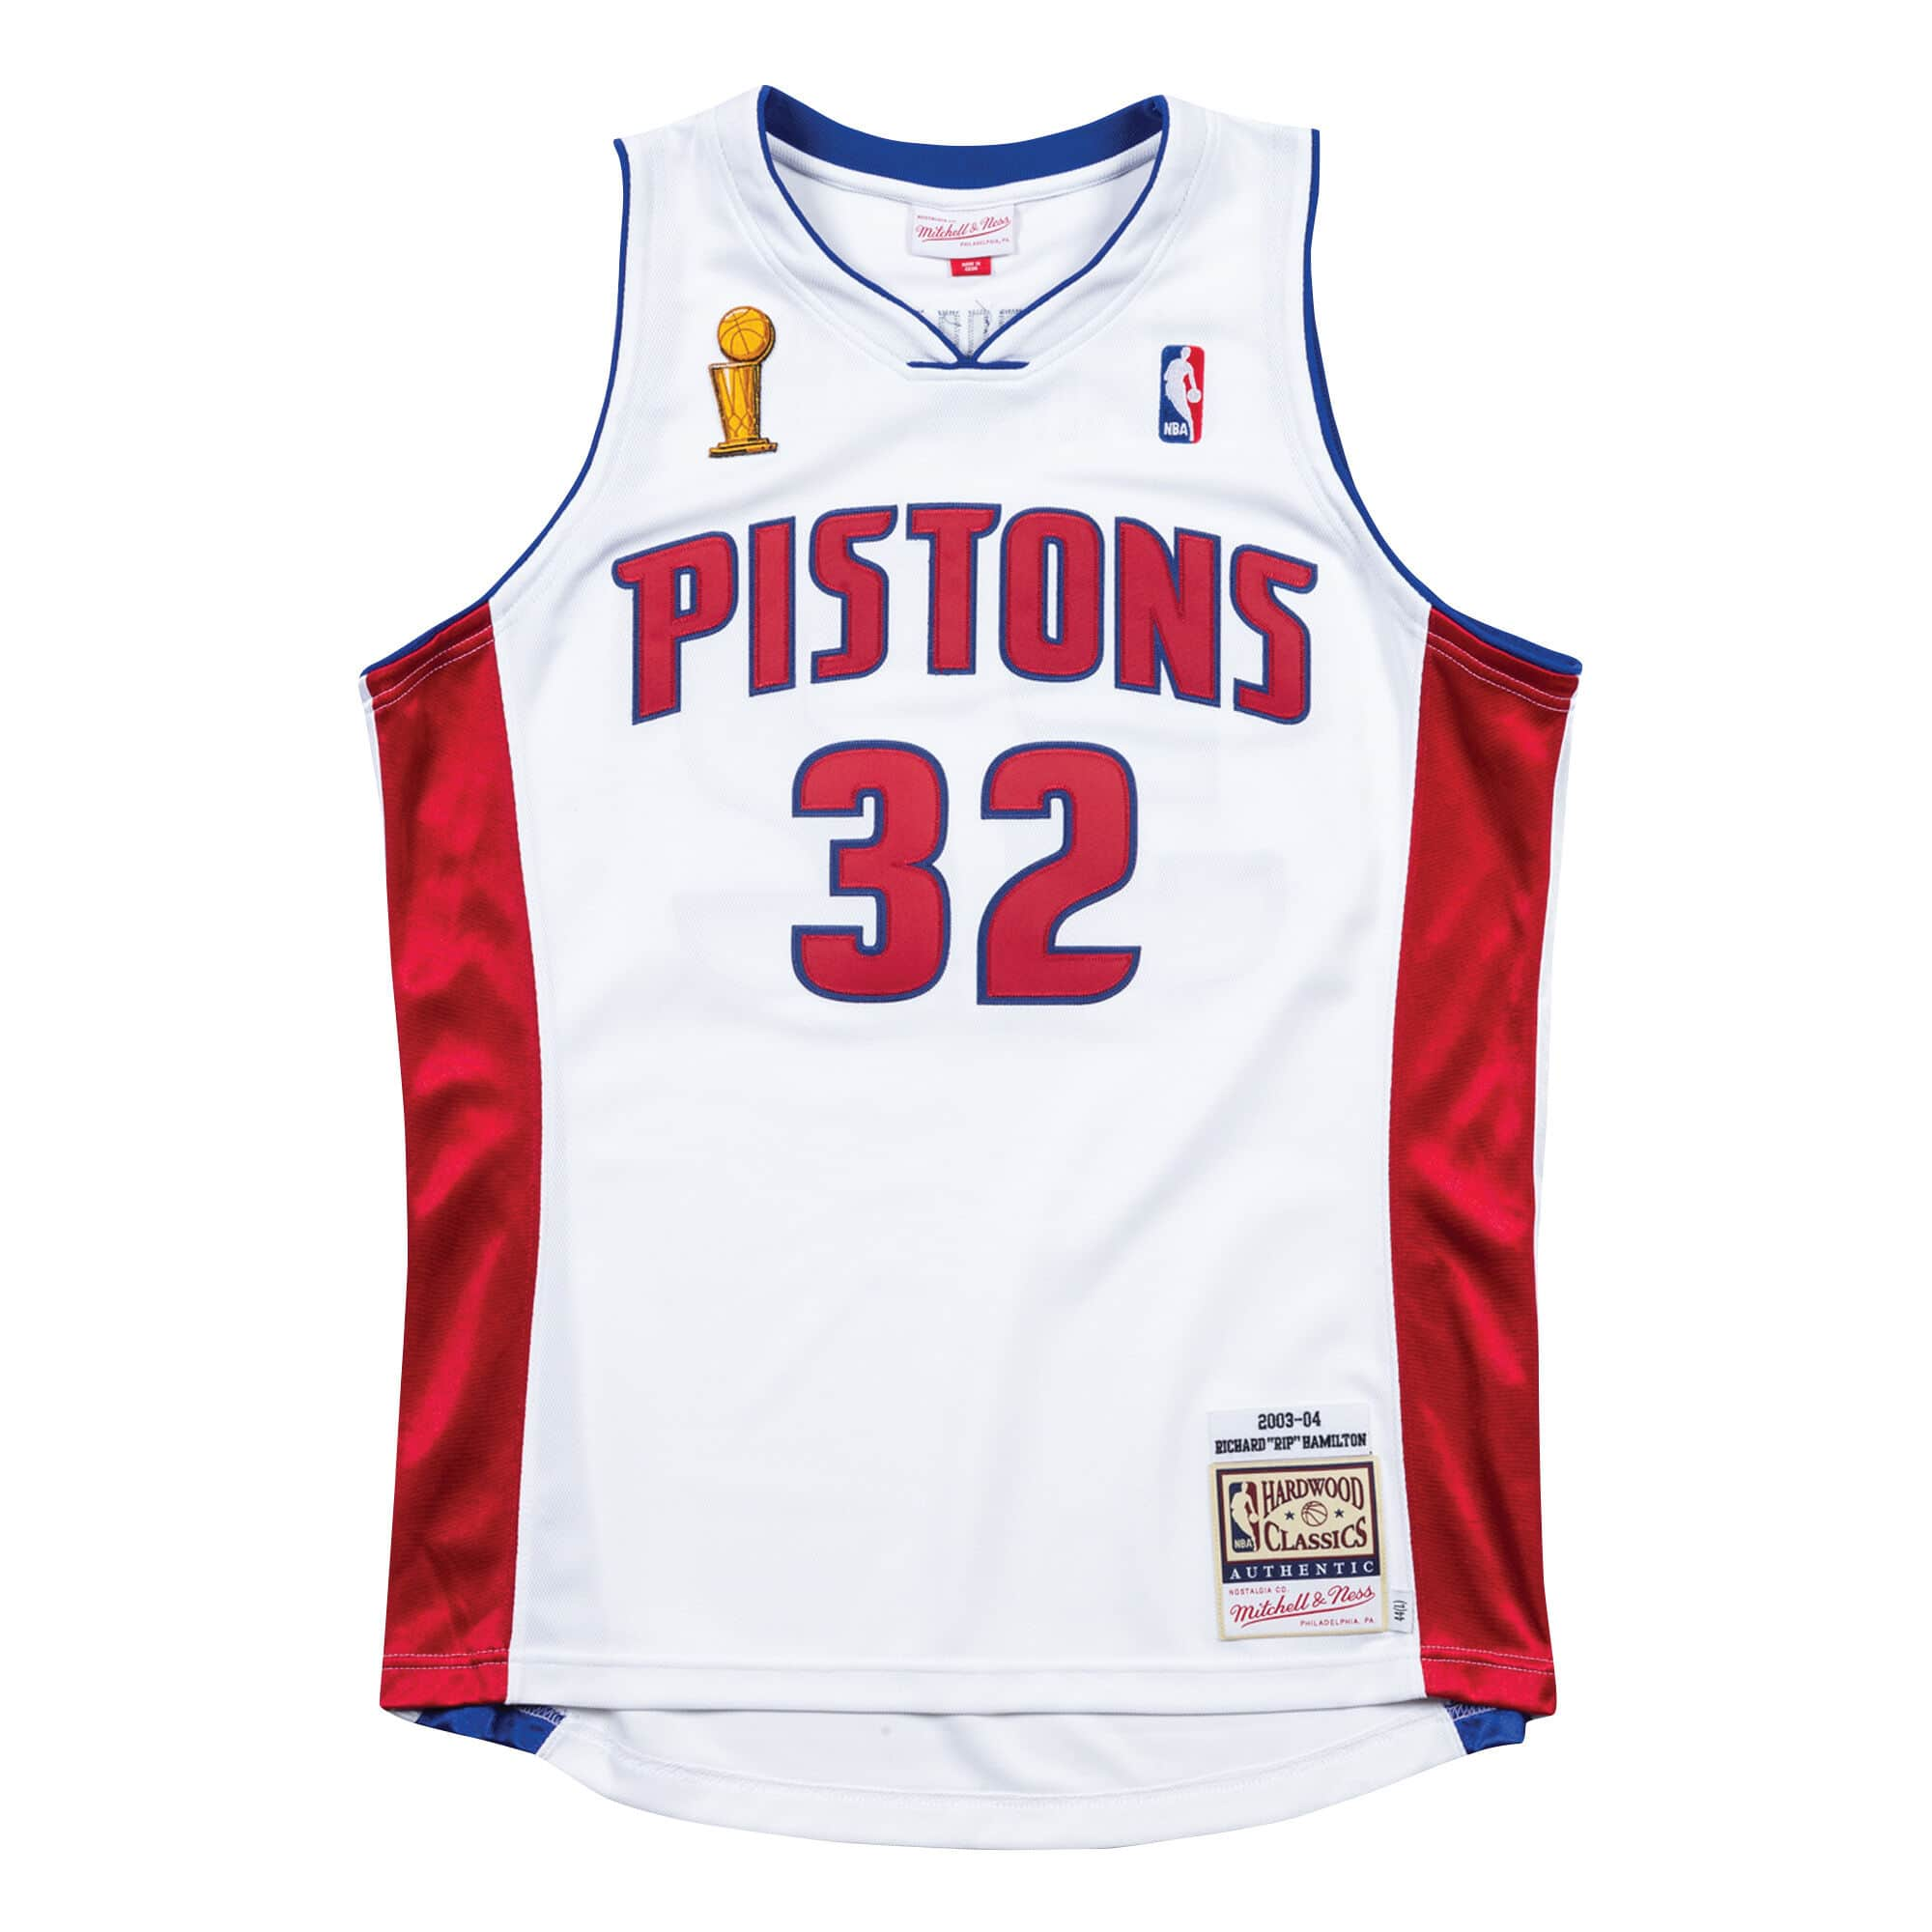 Authentic Jersey Detroit Pistons Home Finals 2003-04 Richard Hamilton